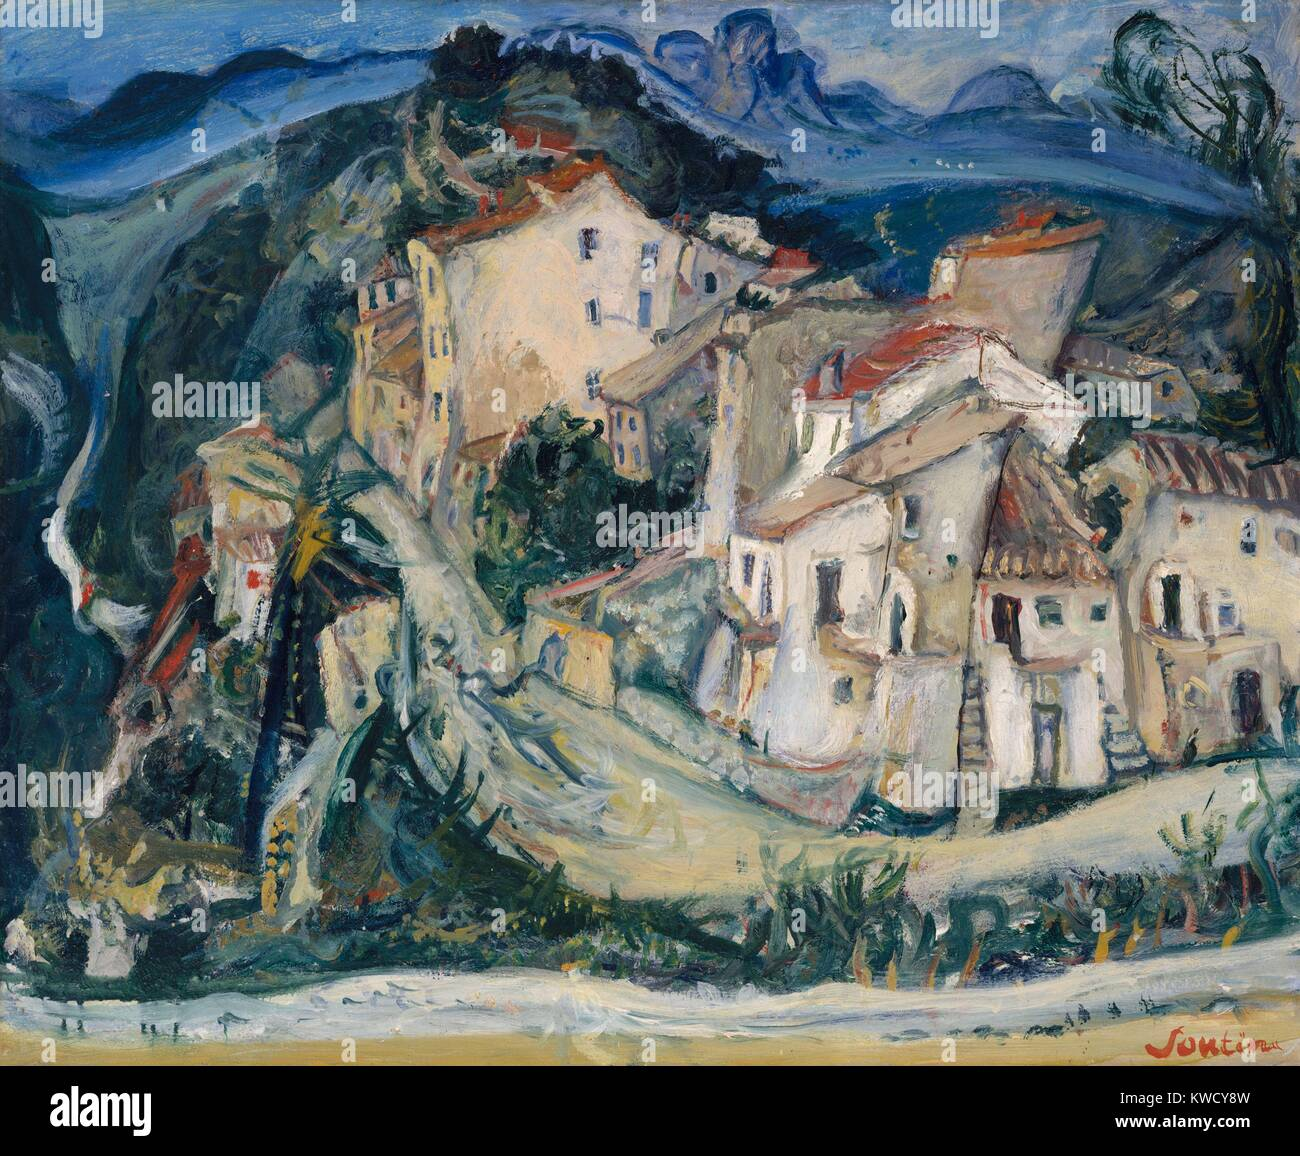 View of Cagnes, by Chaim Soutine, 1924-25, Russian French Expressionist painting, oil on canvas. 1923 to 1925, Soutine - Stock Image